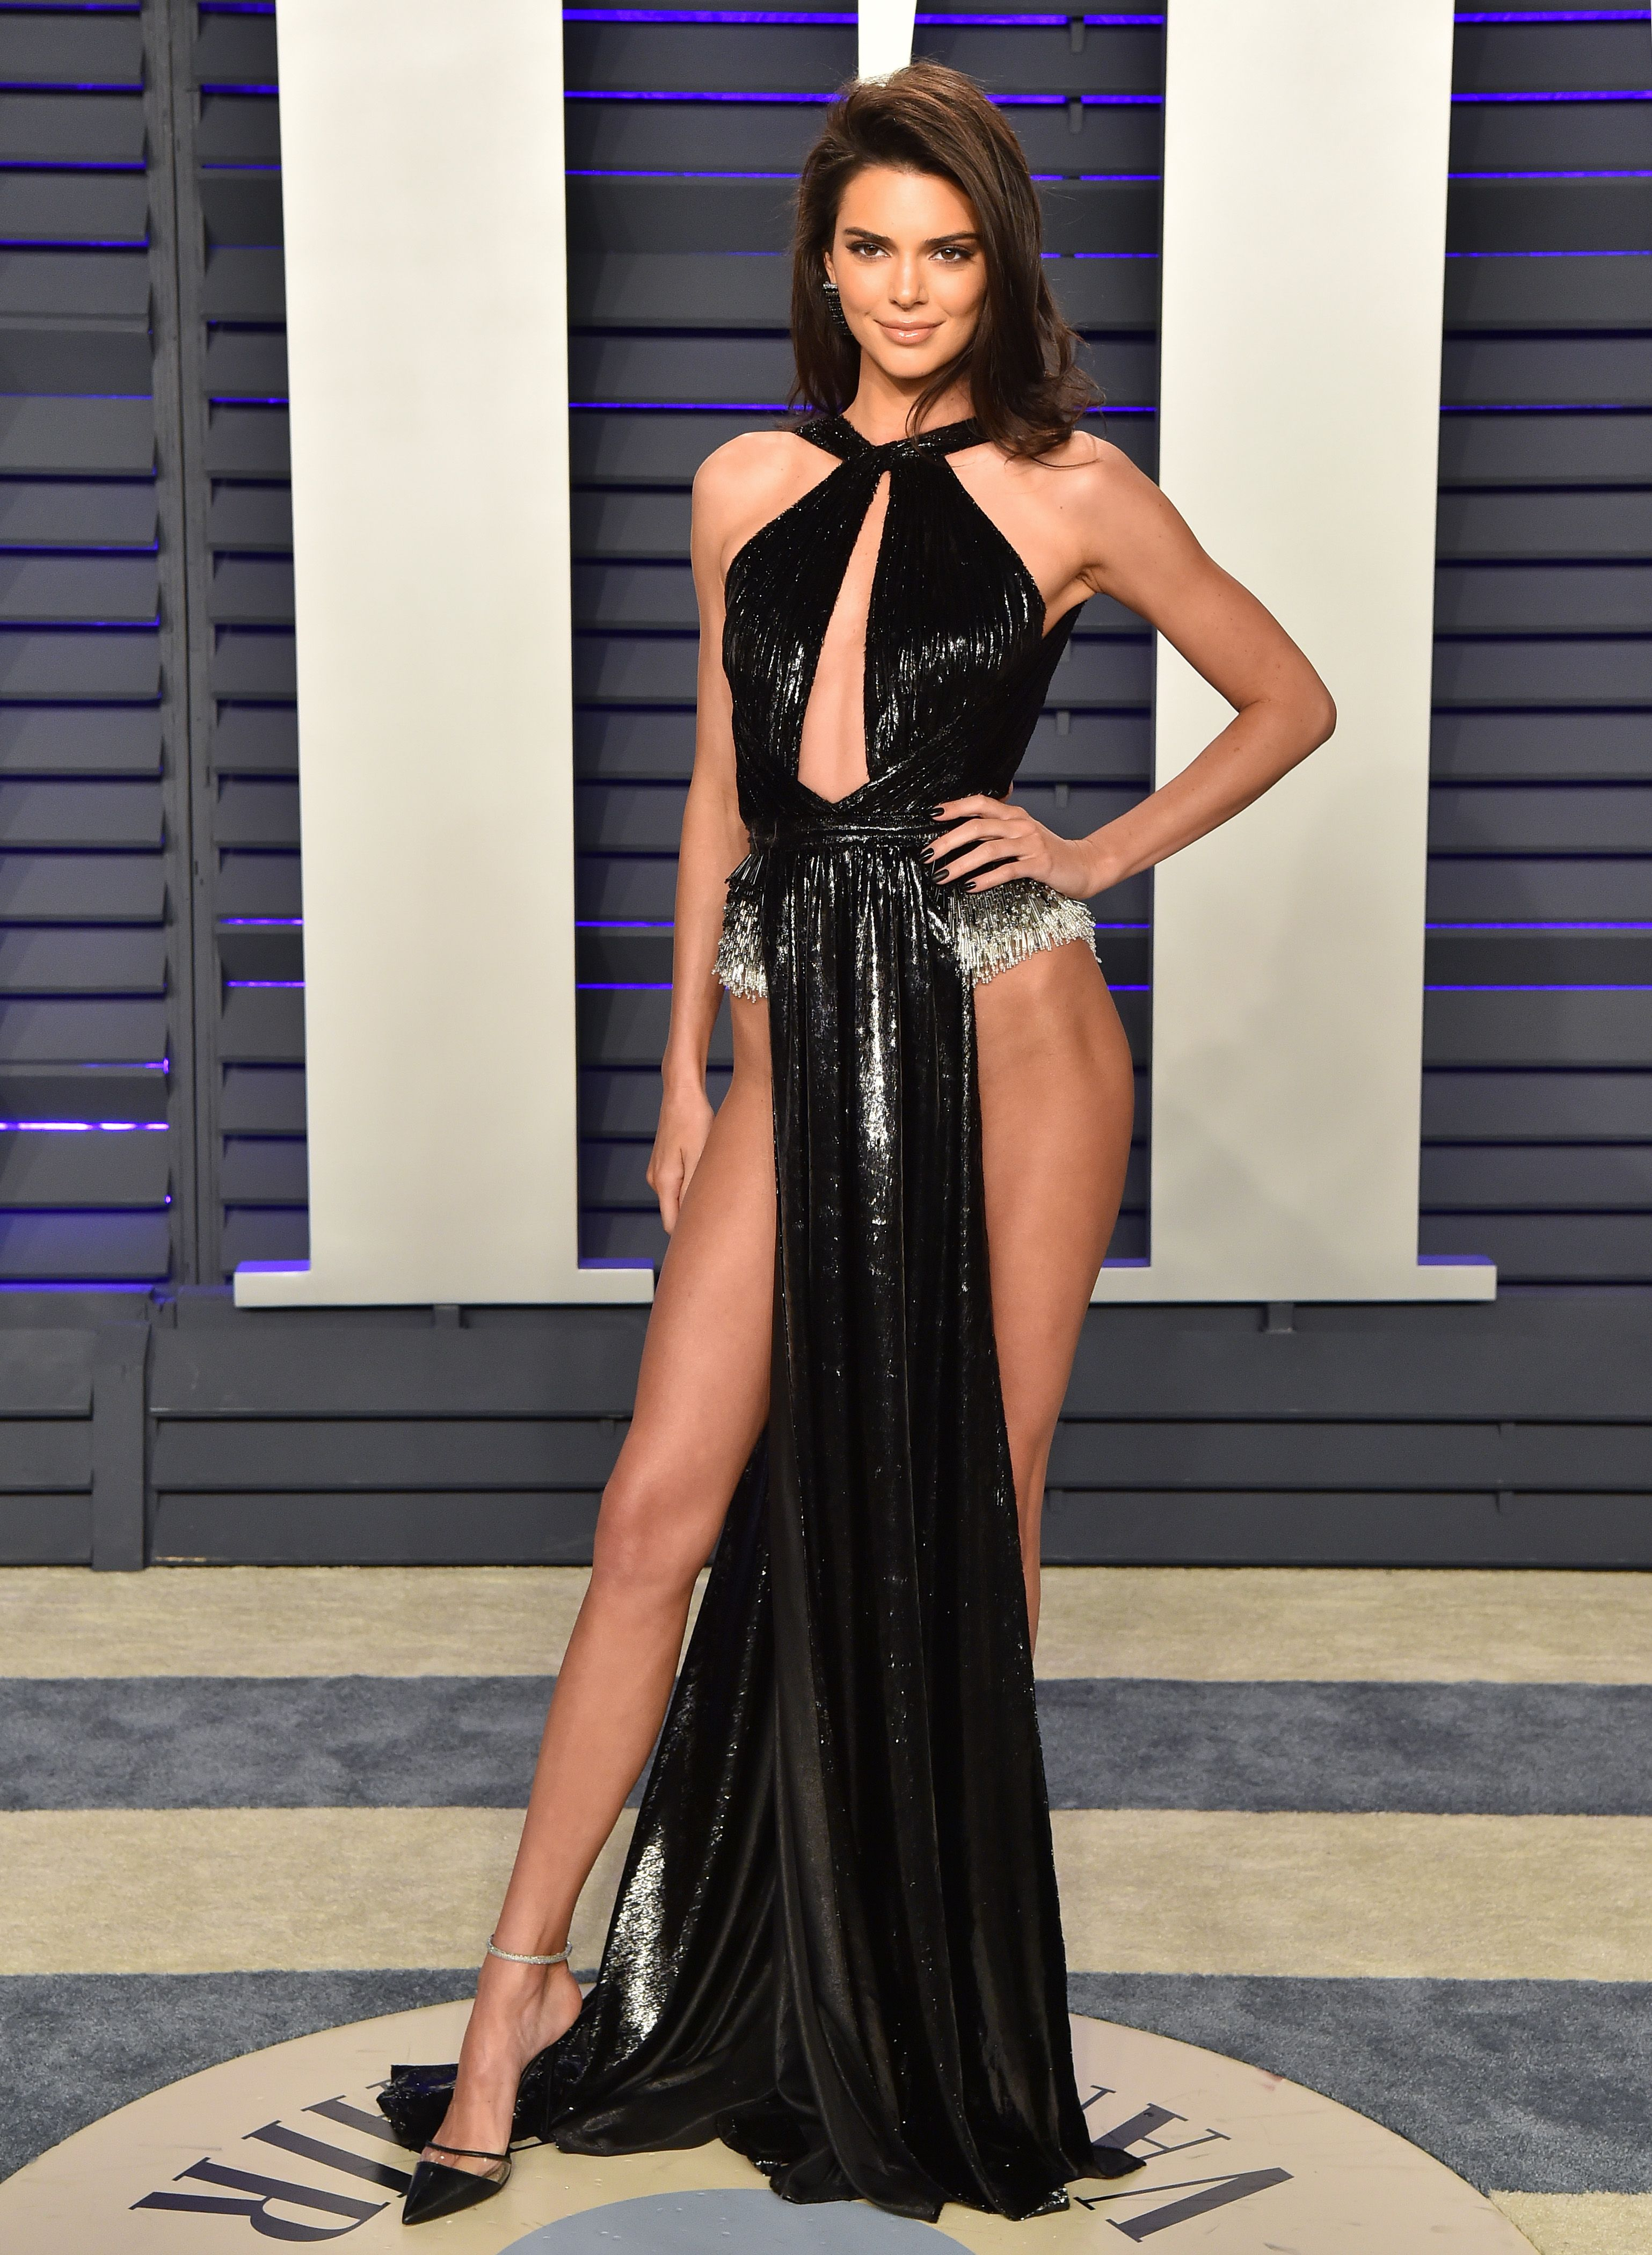 Kendall Jenner at the 2019 Vanity Fair Oscar Party Hosted By Radhika Jones - Arrivals